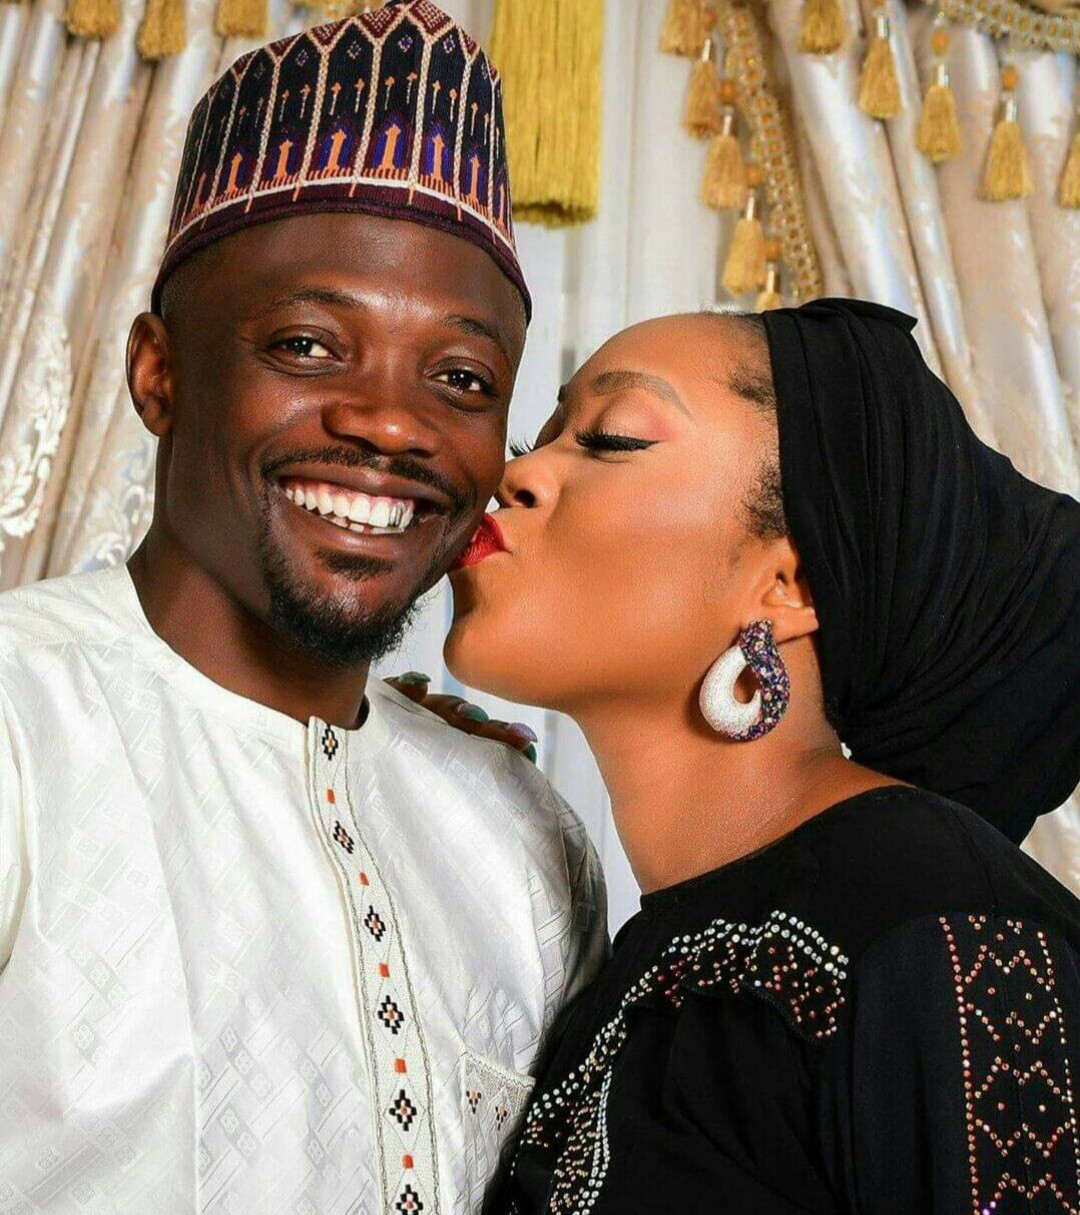 Ahmed Musa called out by Muslims for posting photo of his wife kissing him on the cheek